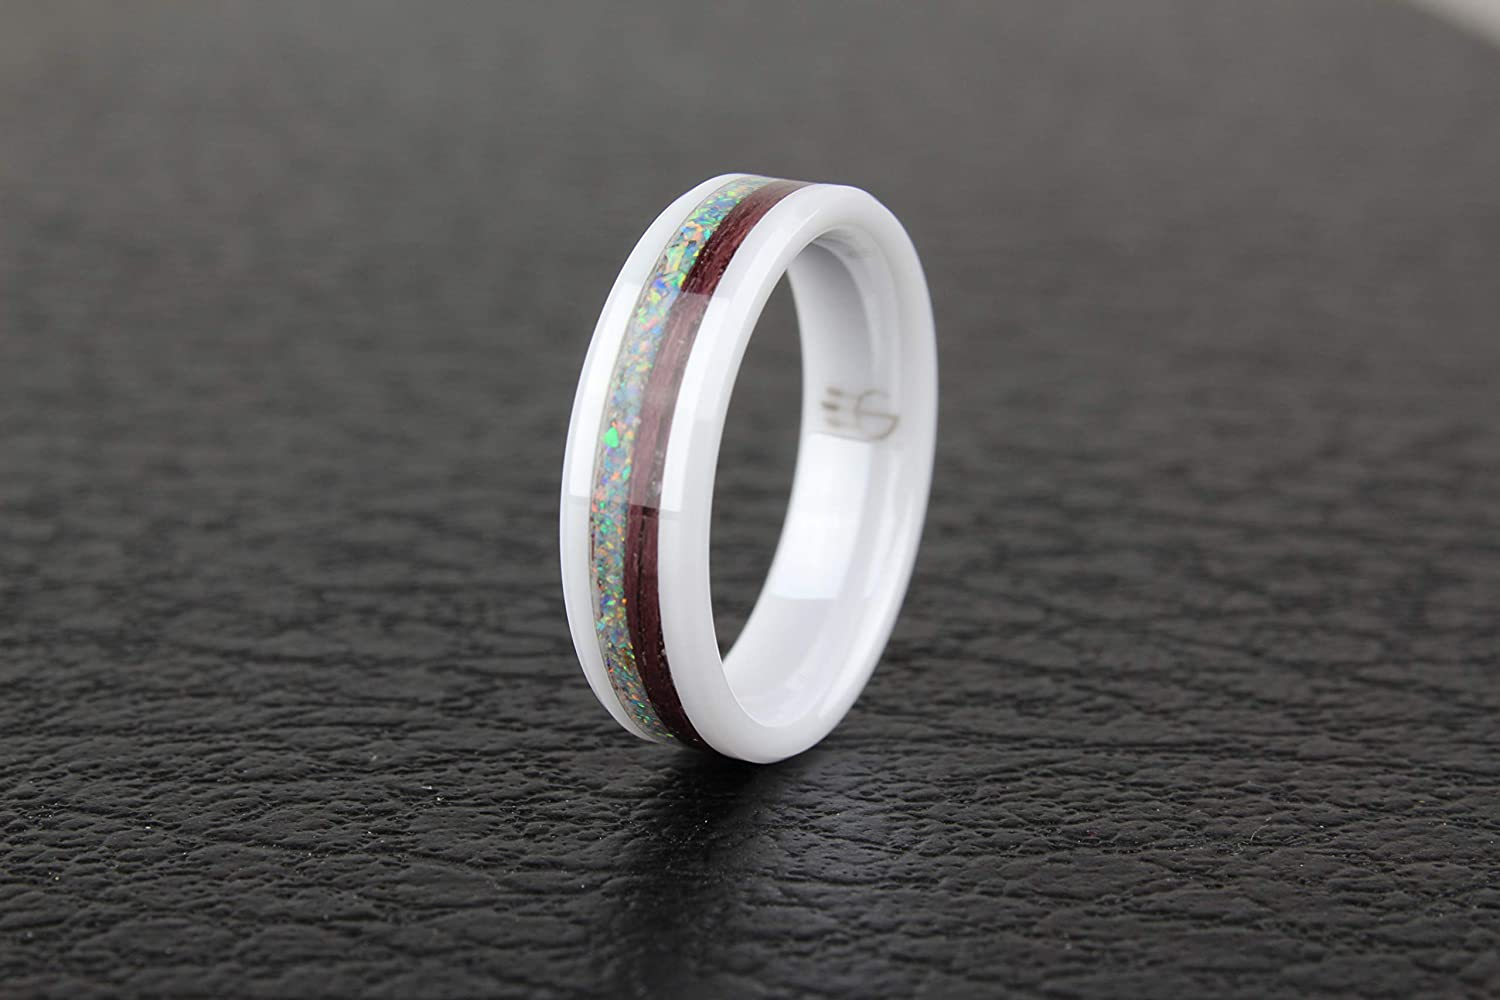 PurpleHeart with Opal inlay White Ceramic 6mm